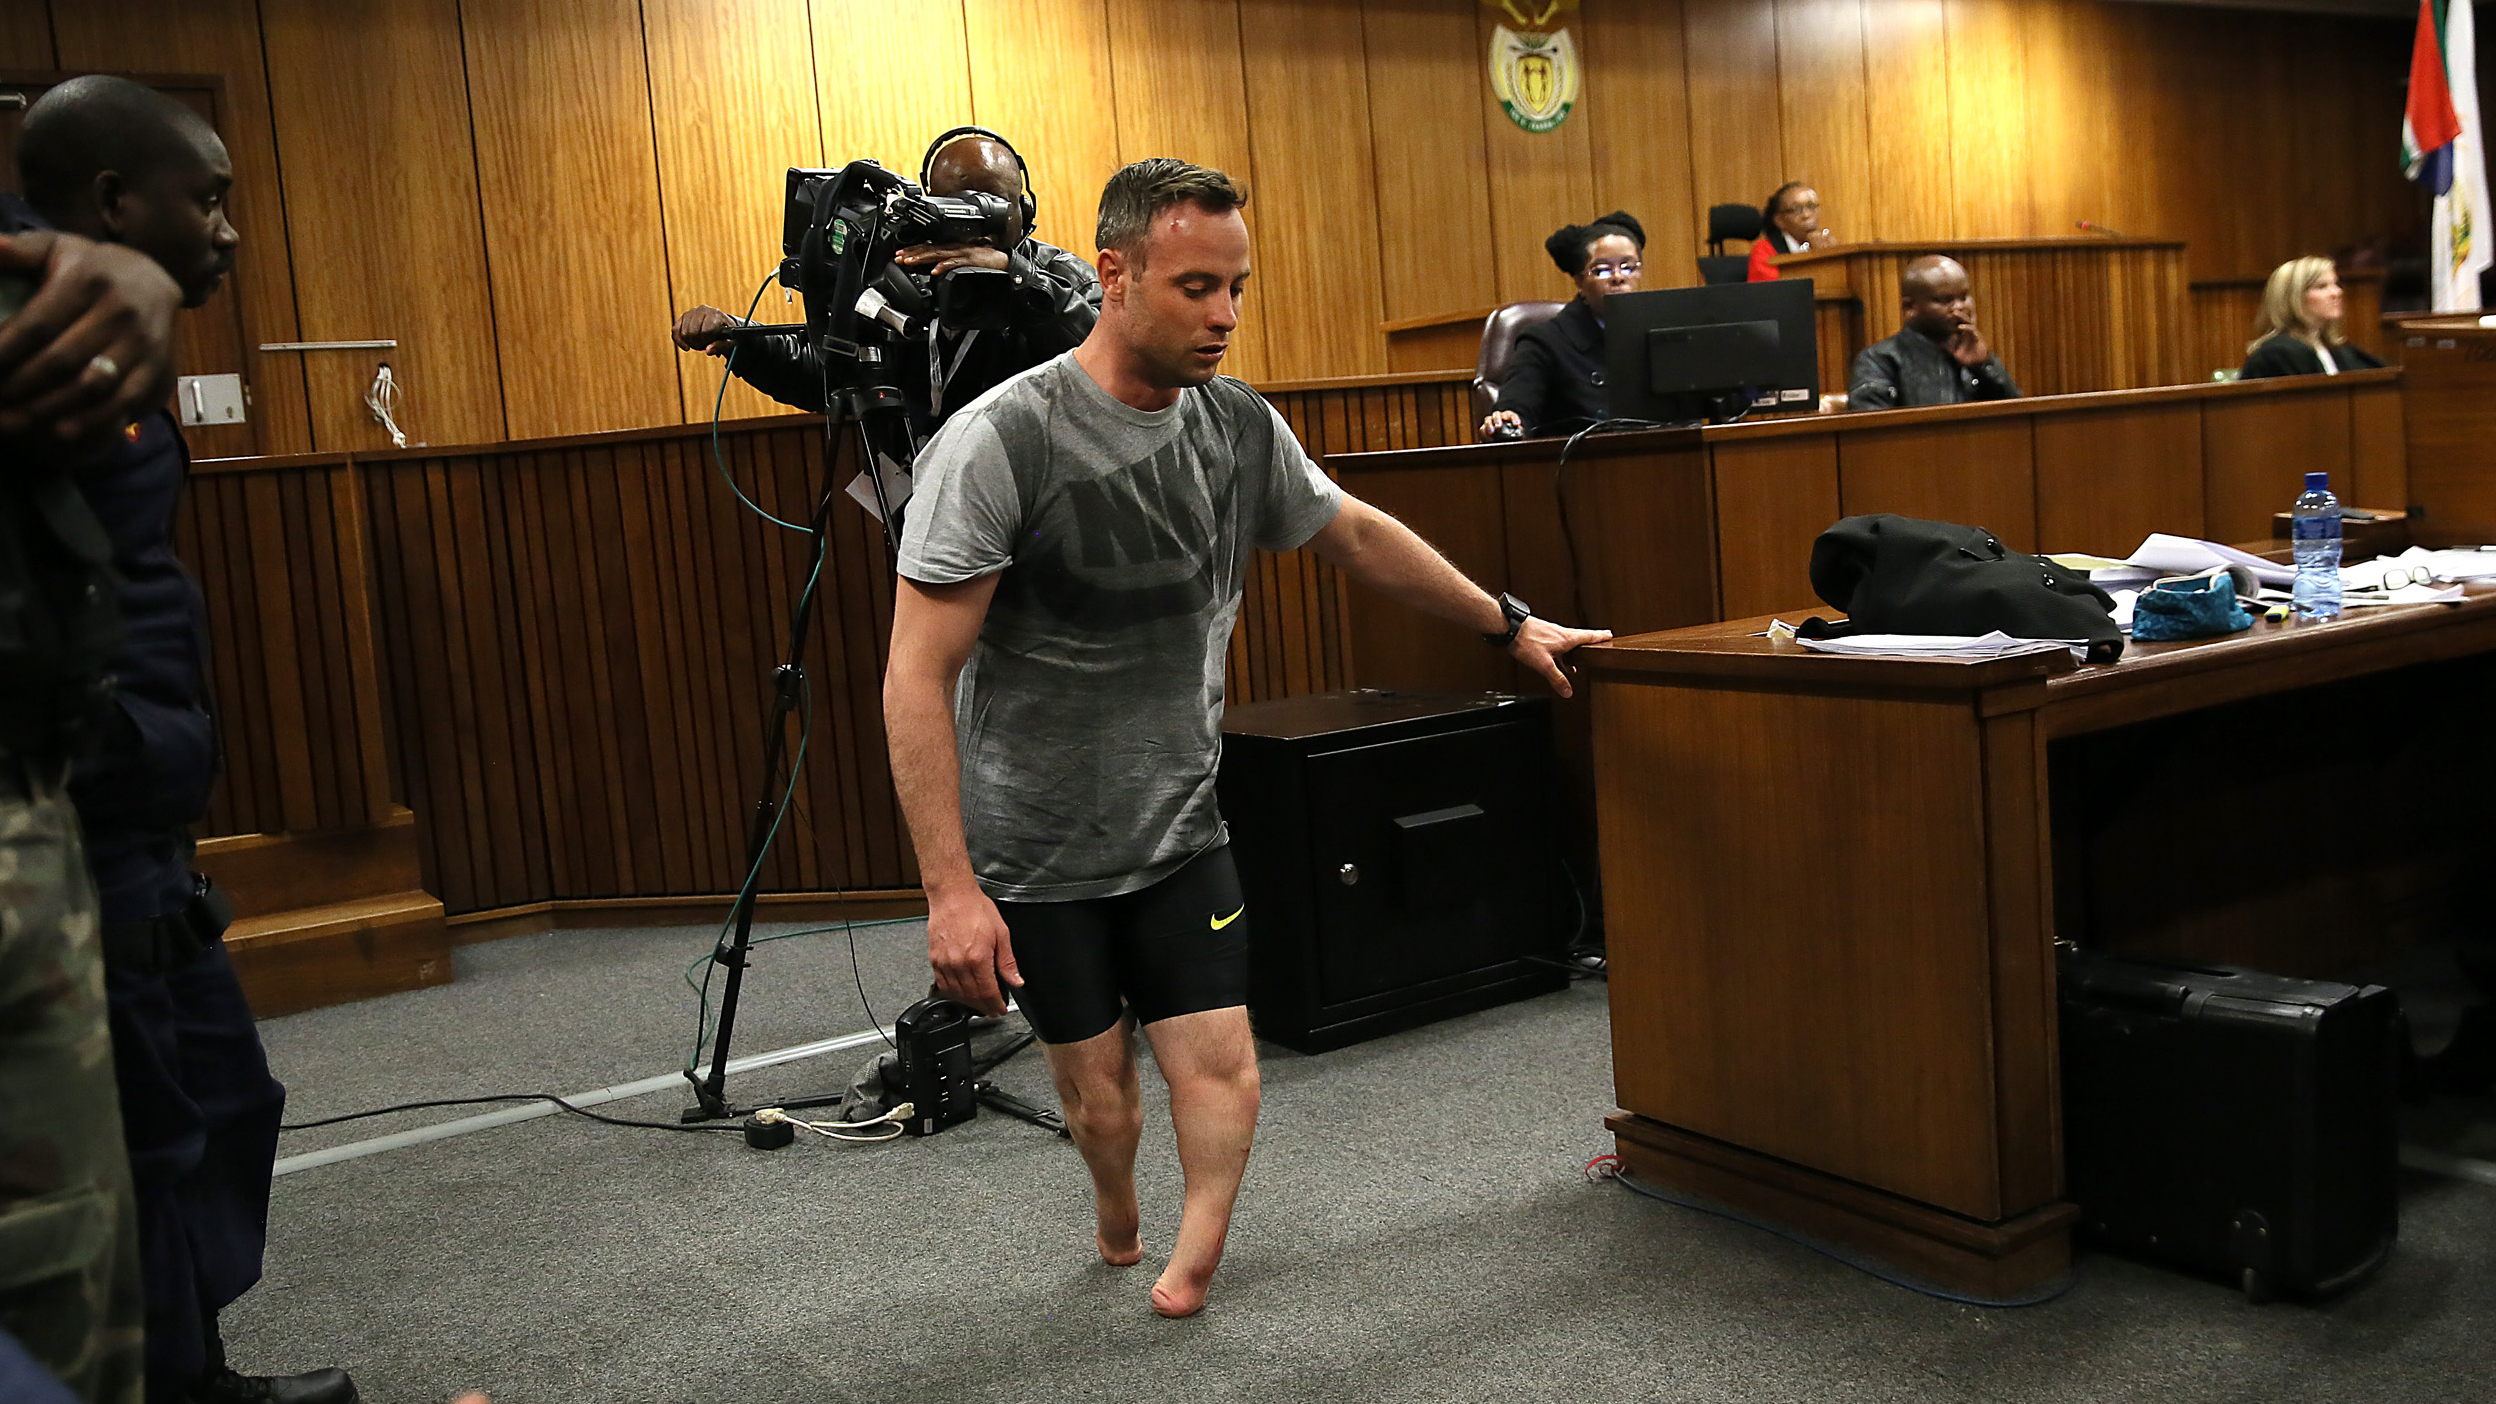 Wounded Veterans Pose Nude In Michael Stokes Photo Book additionally Oscar pistorius and mckayla maroney beautiful losers also Ellie May Challis The Little Girl With No Limbs in addition Oscar Pistorius Charged Murder Reeva Steenk  Dead besides Pistorius Walks Without His Prosthetic Legs In Dramatic Show At Sentencing Hearing. on oscar pistorius legs amputated